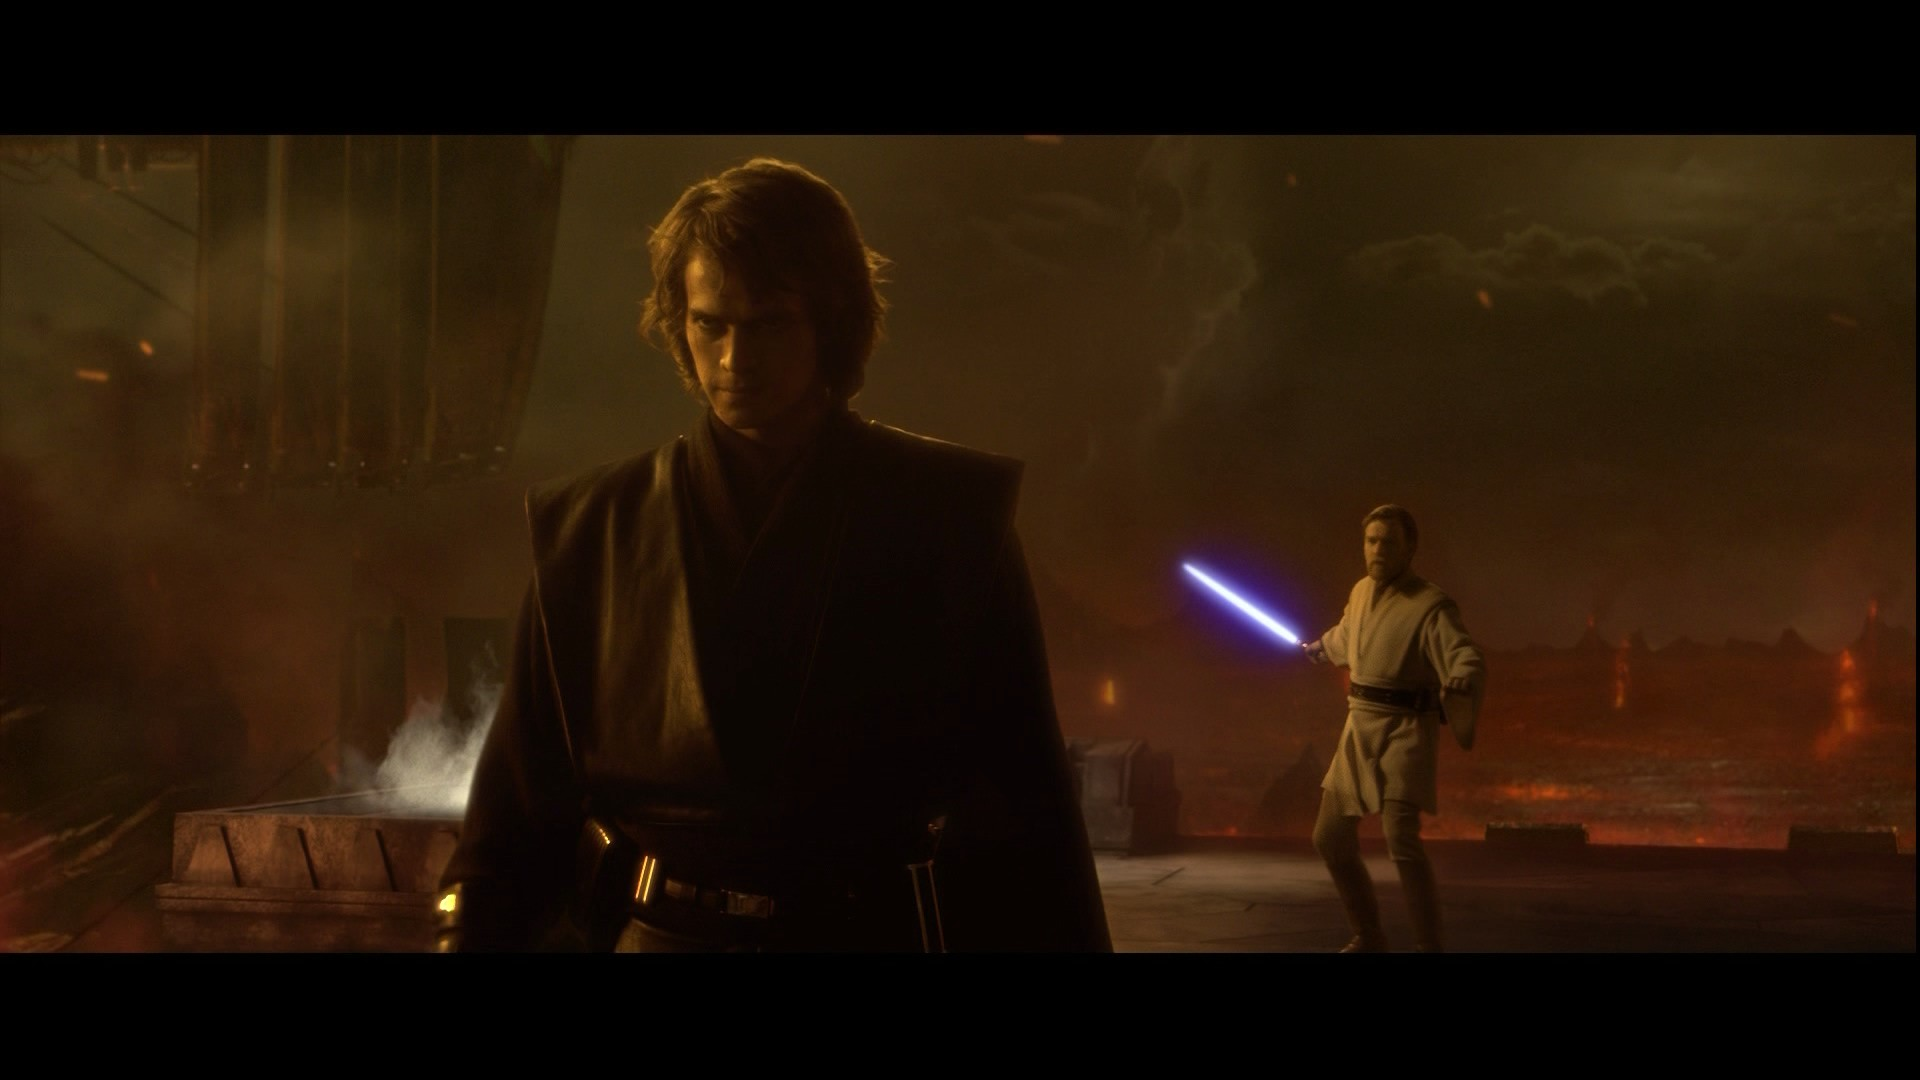 Movie Review Star Wars Episode Iii Revenge Of The Sith Stroke Of Genius